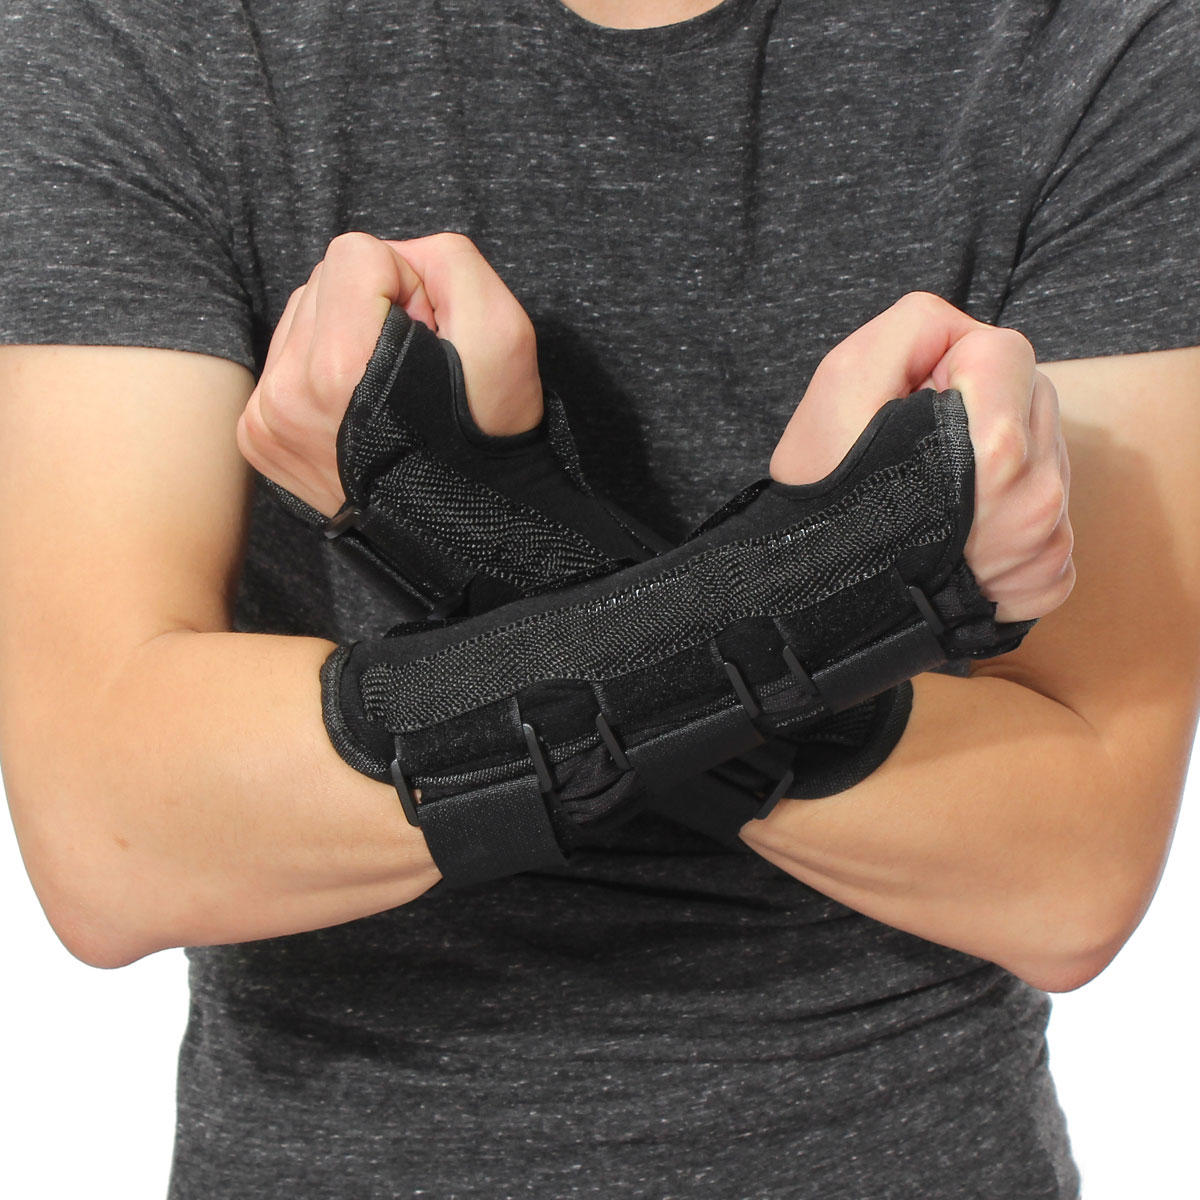 Wrist Splint Support Brace Fractures Carpal Tunnel Arthritis Sprain Band